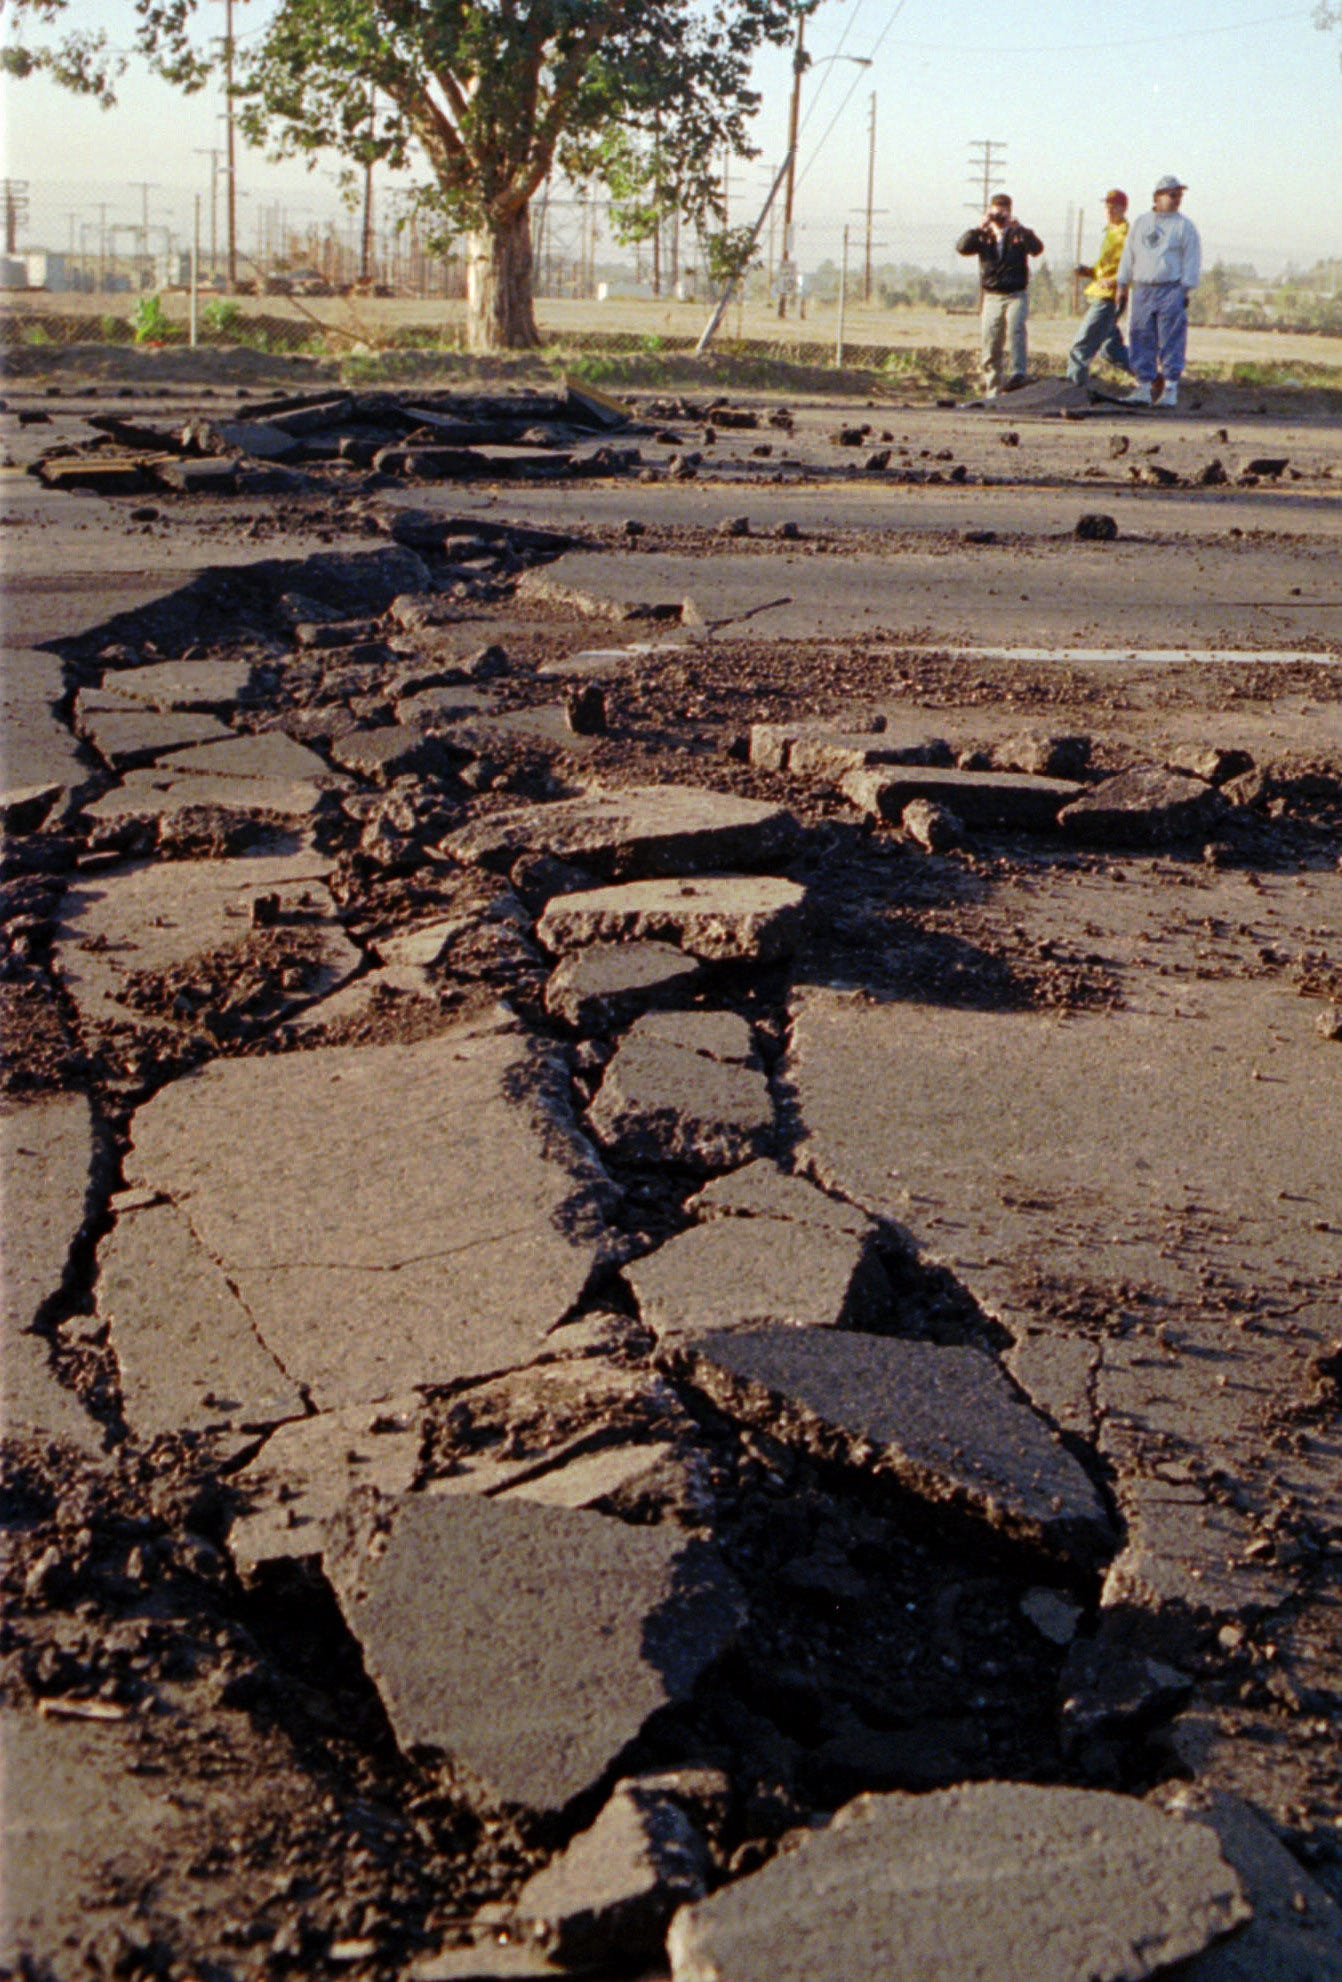 The Big One more likely earthquake